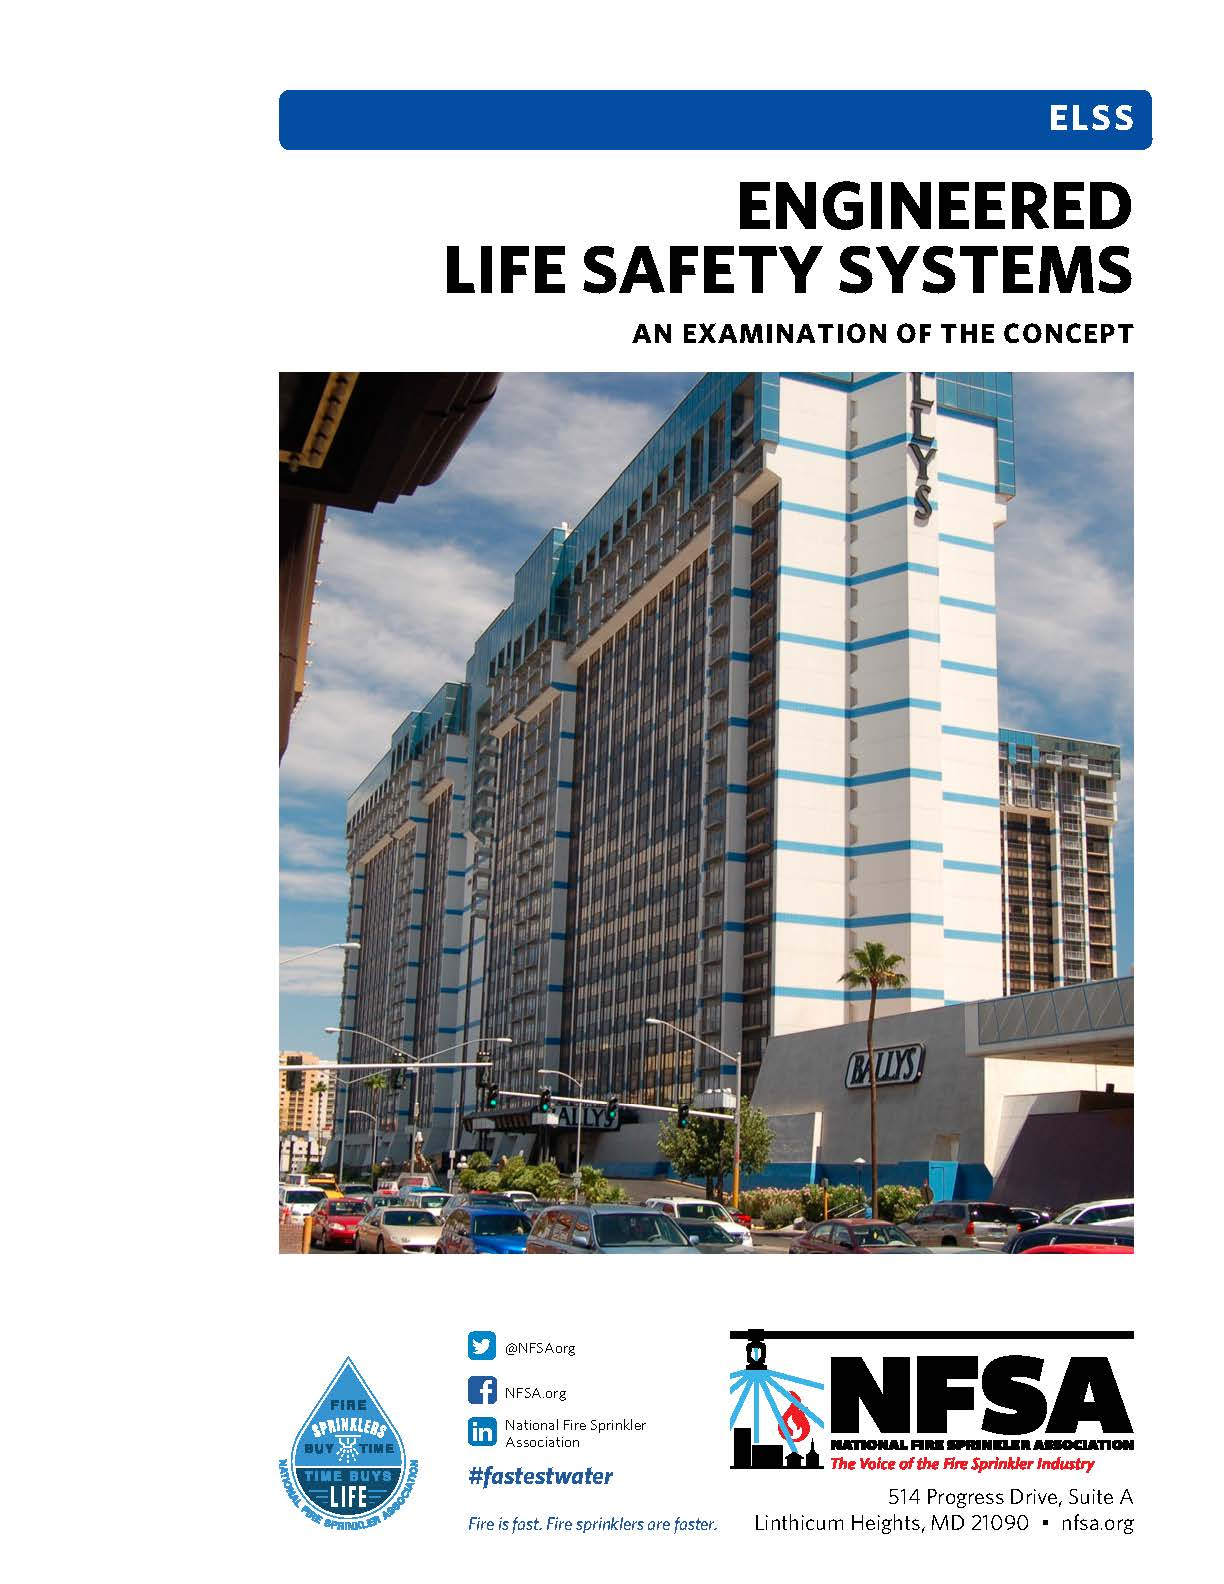 NFSA Guide, Engineered Life Safety Systems (1st Ed.)